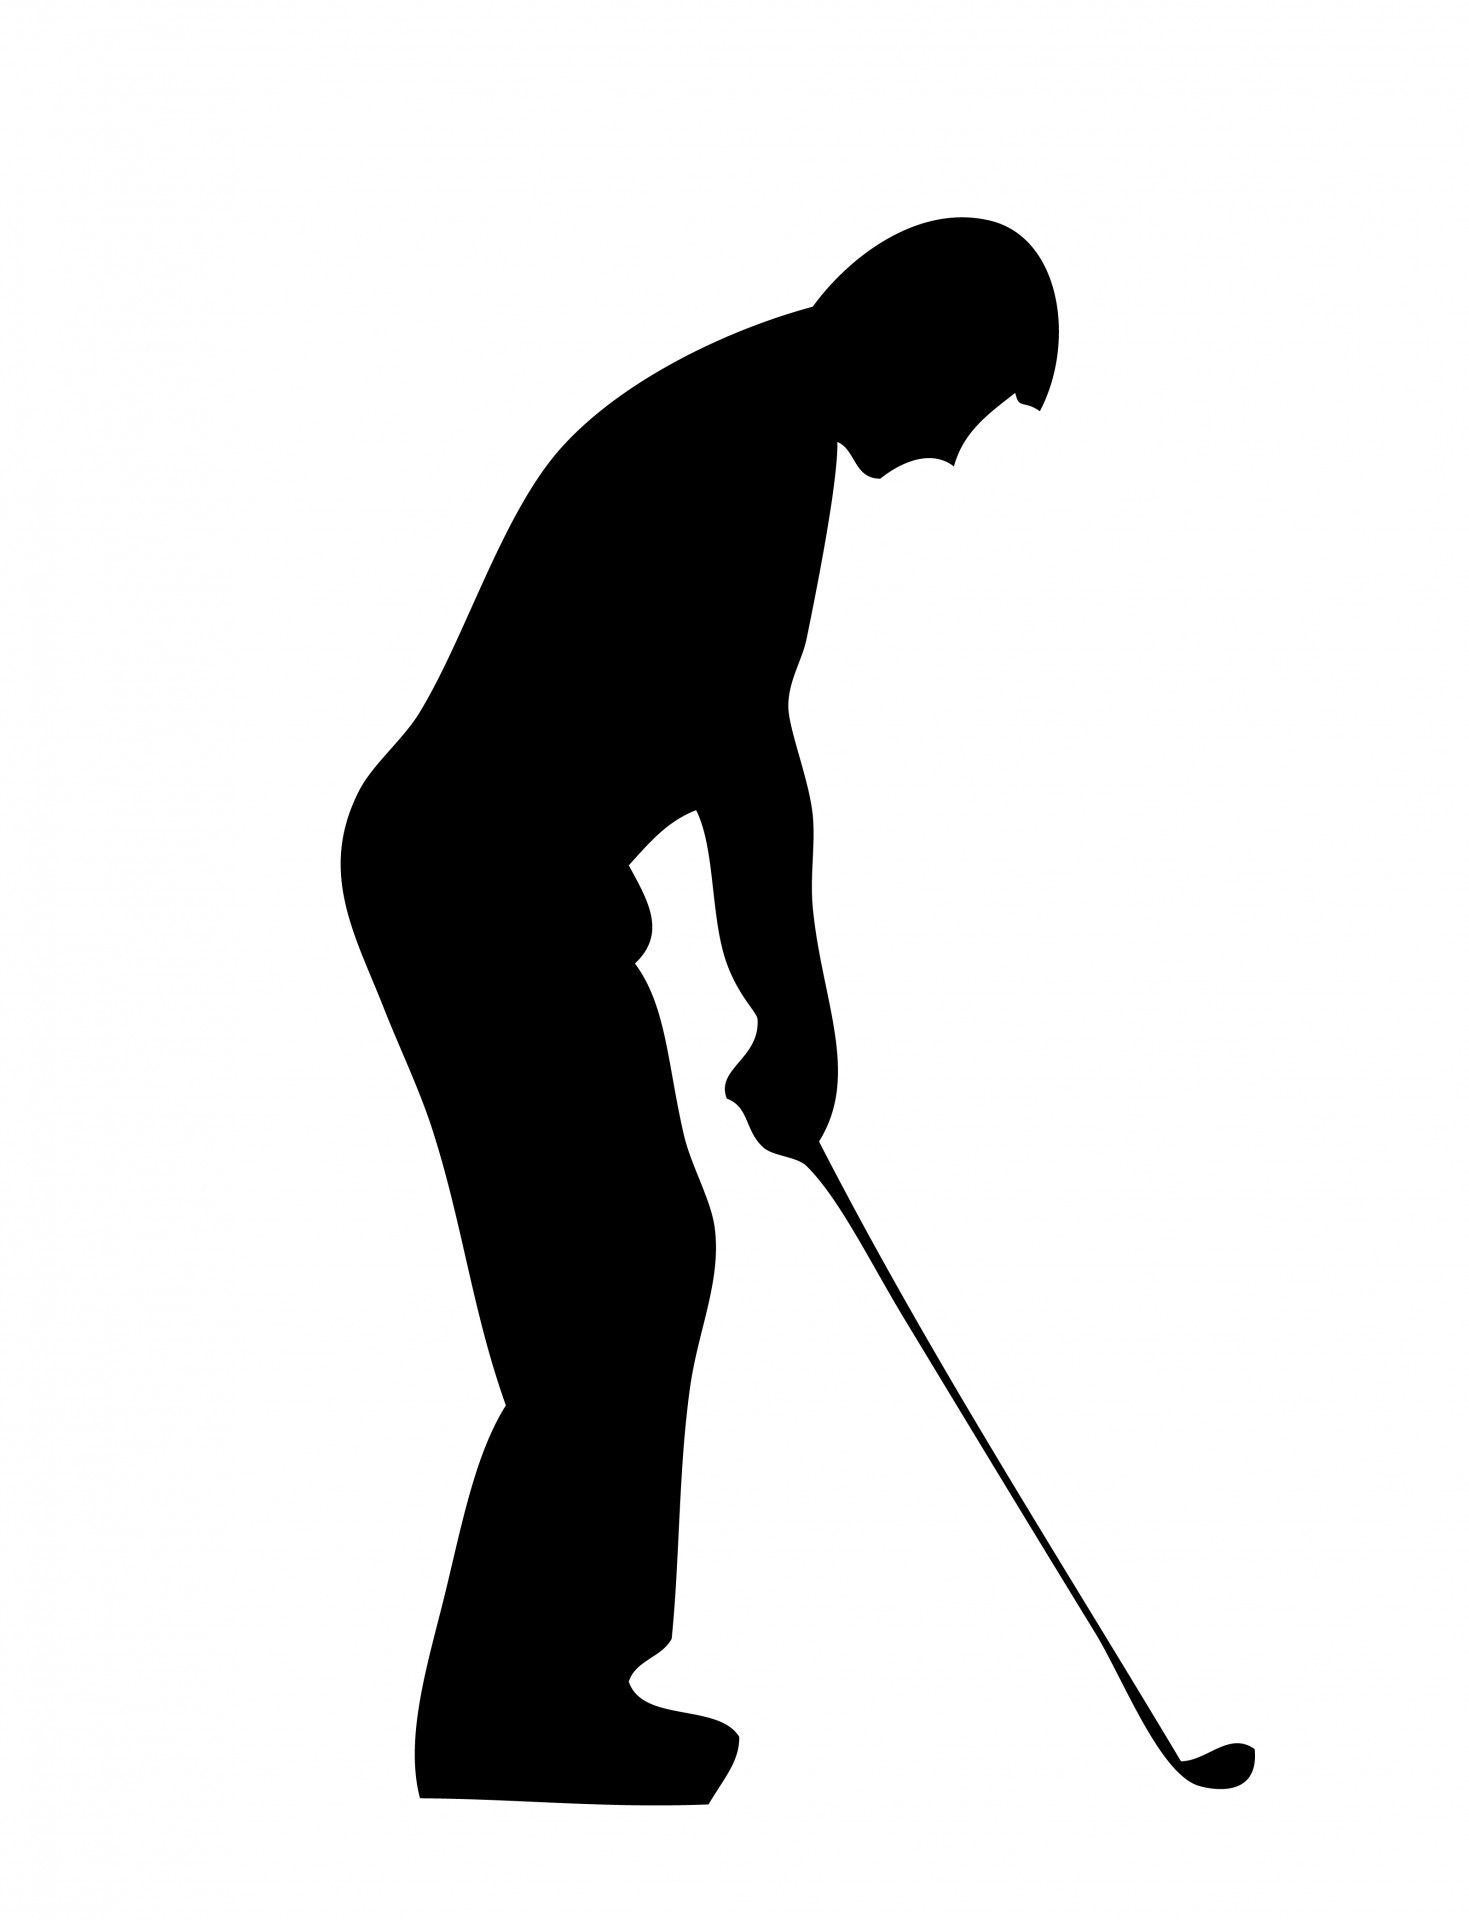 Golfing clipart. Golf player silhouette free